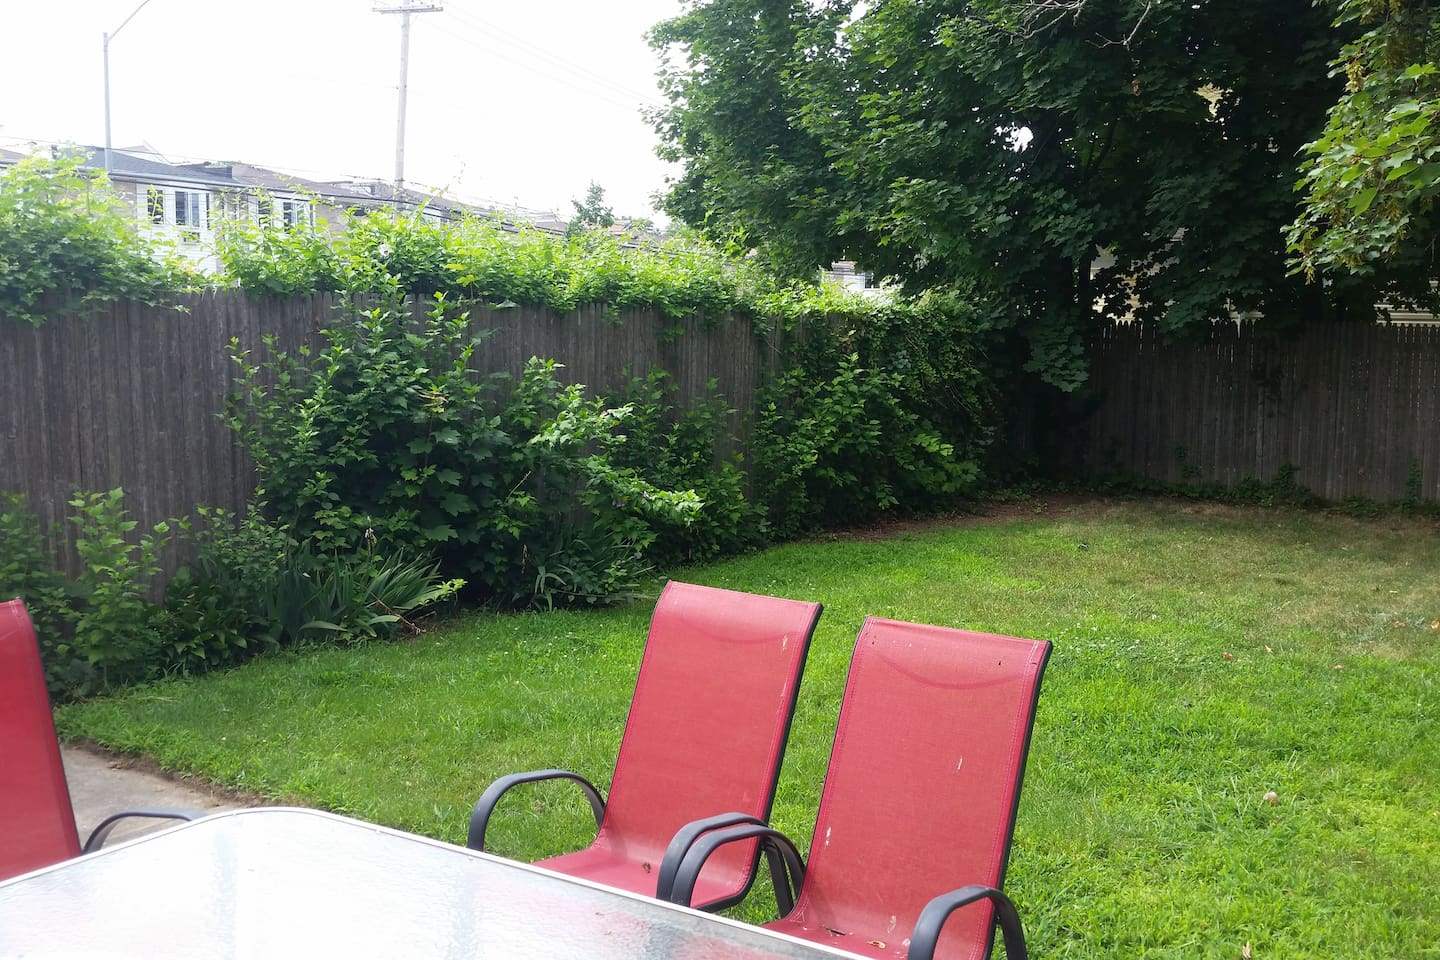 Back yard all to yourself